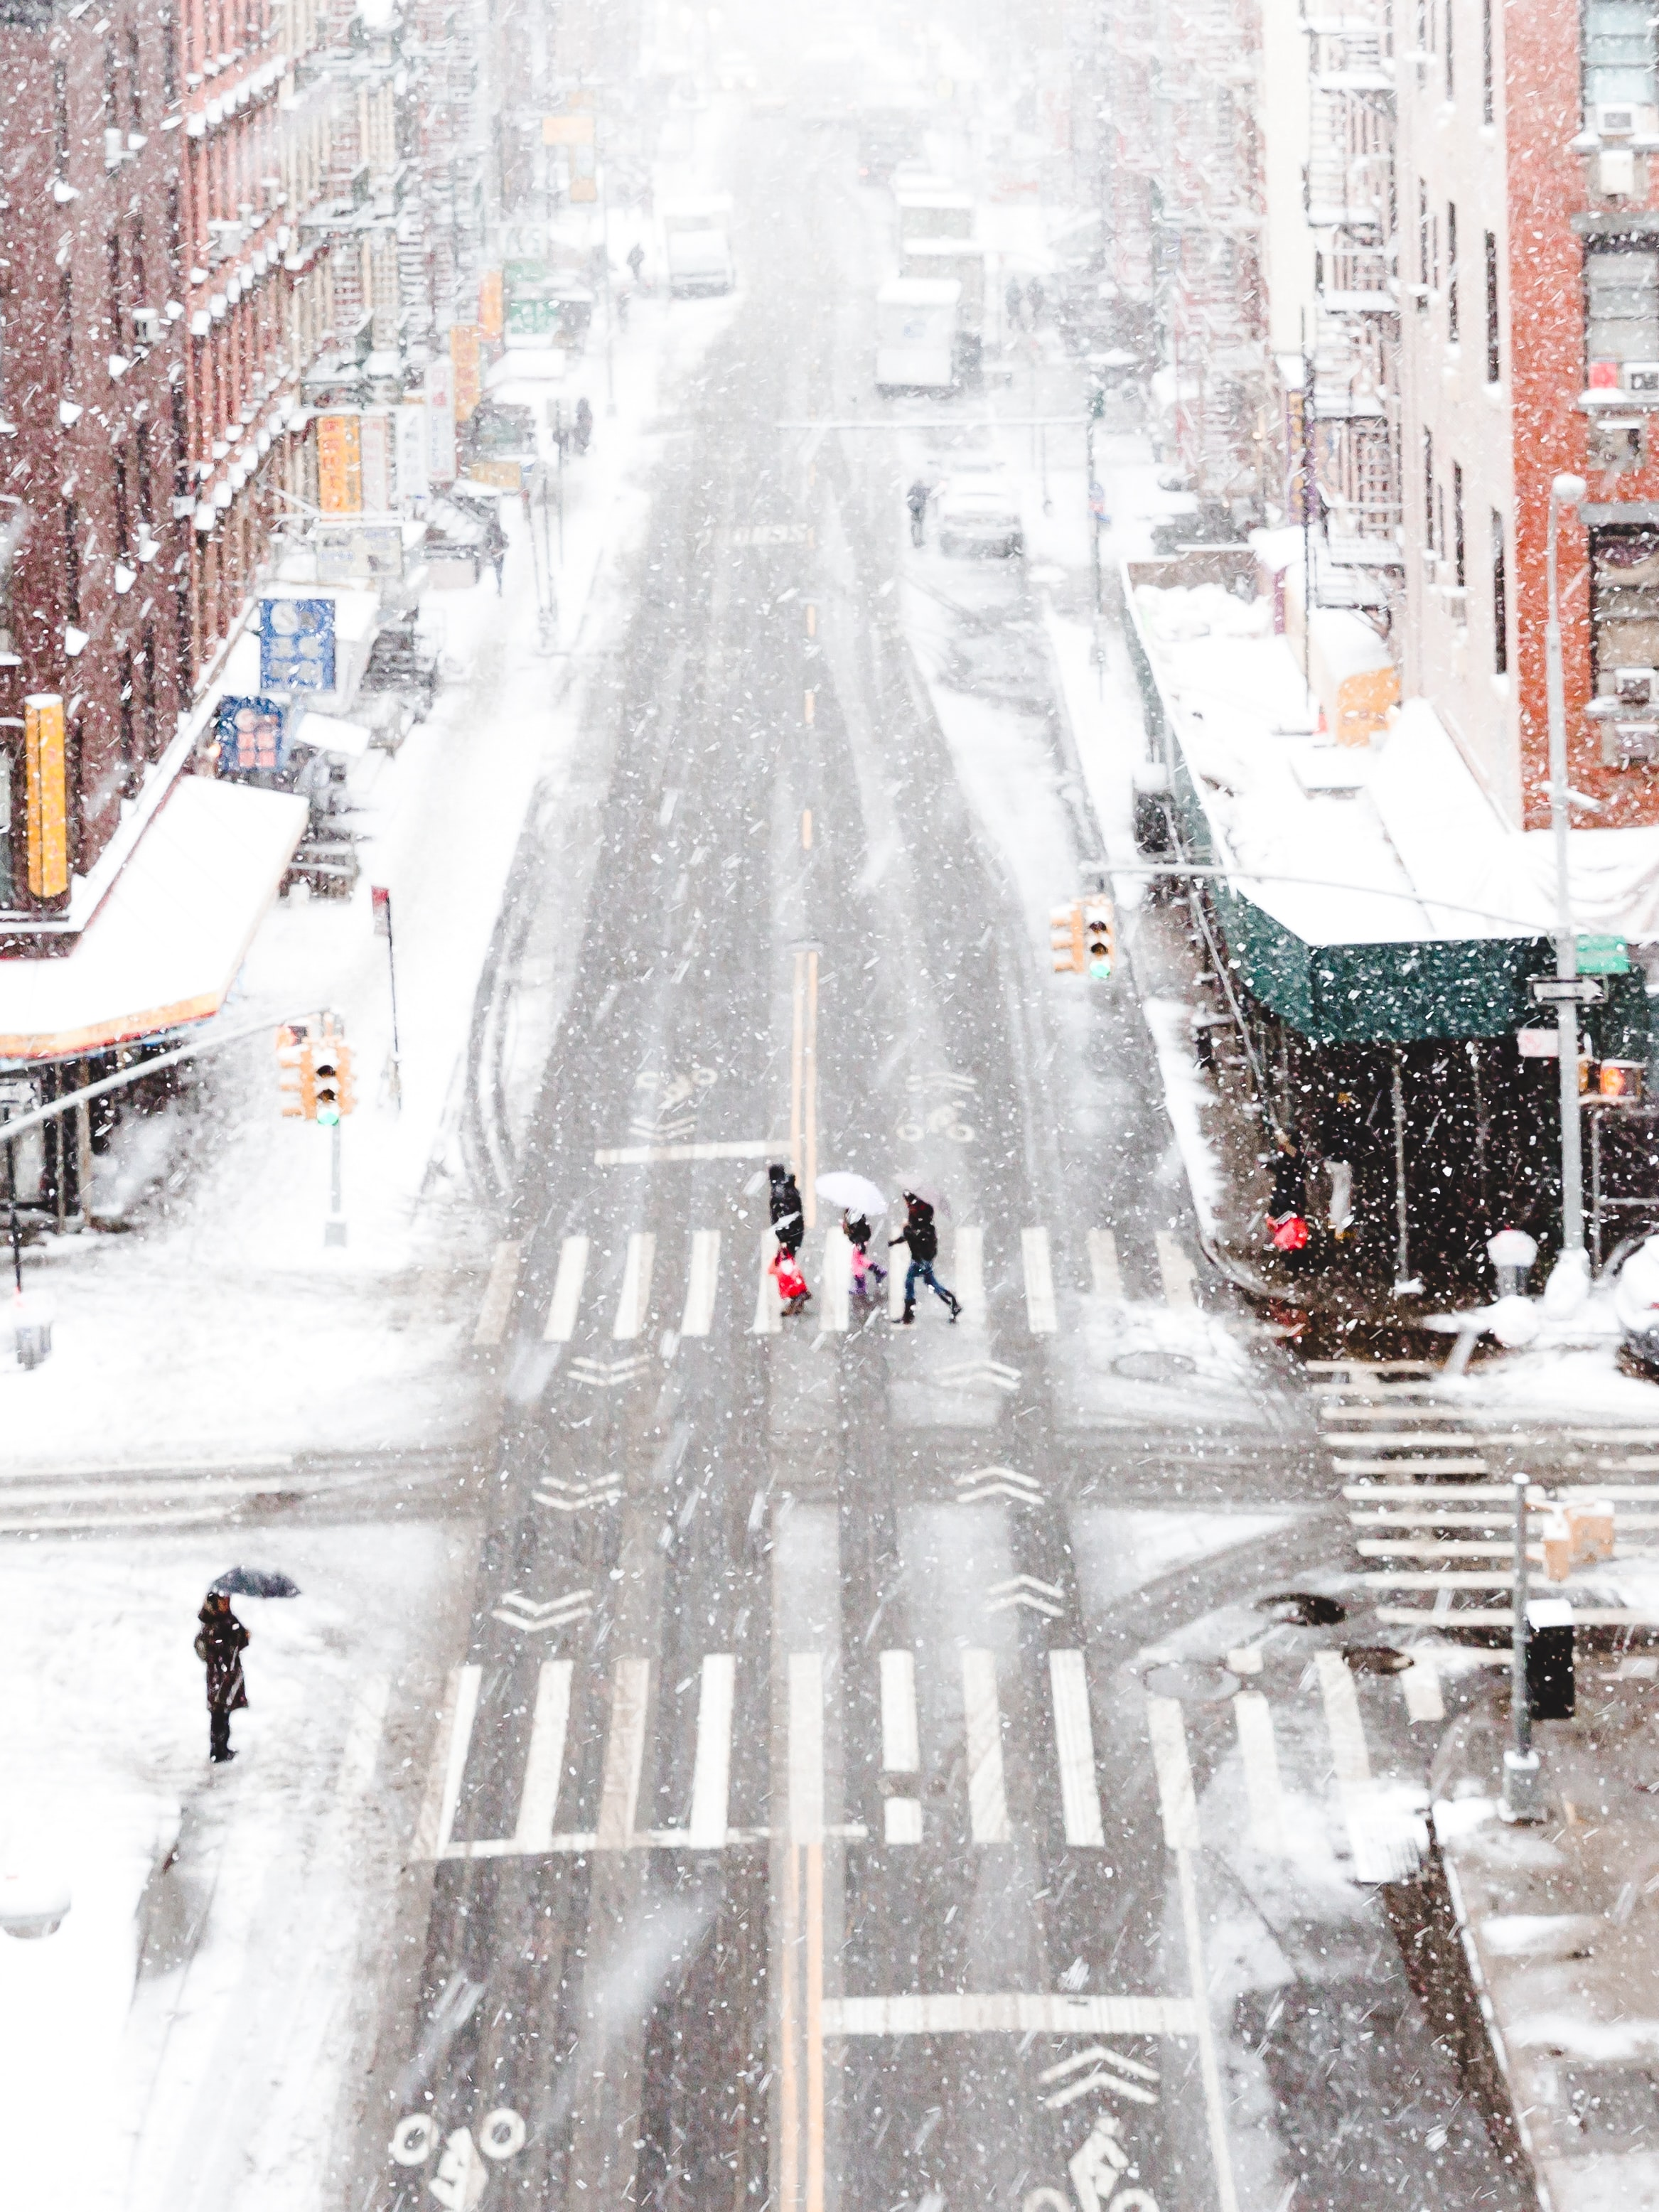 People walking across the street at a crosswalk in Chinatown on a winter day